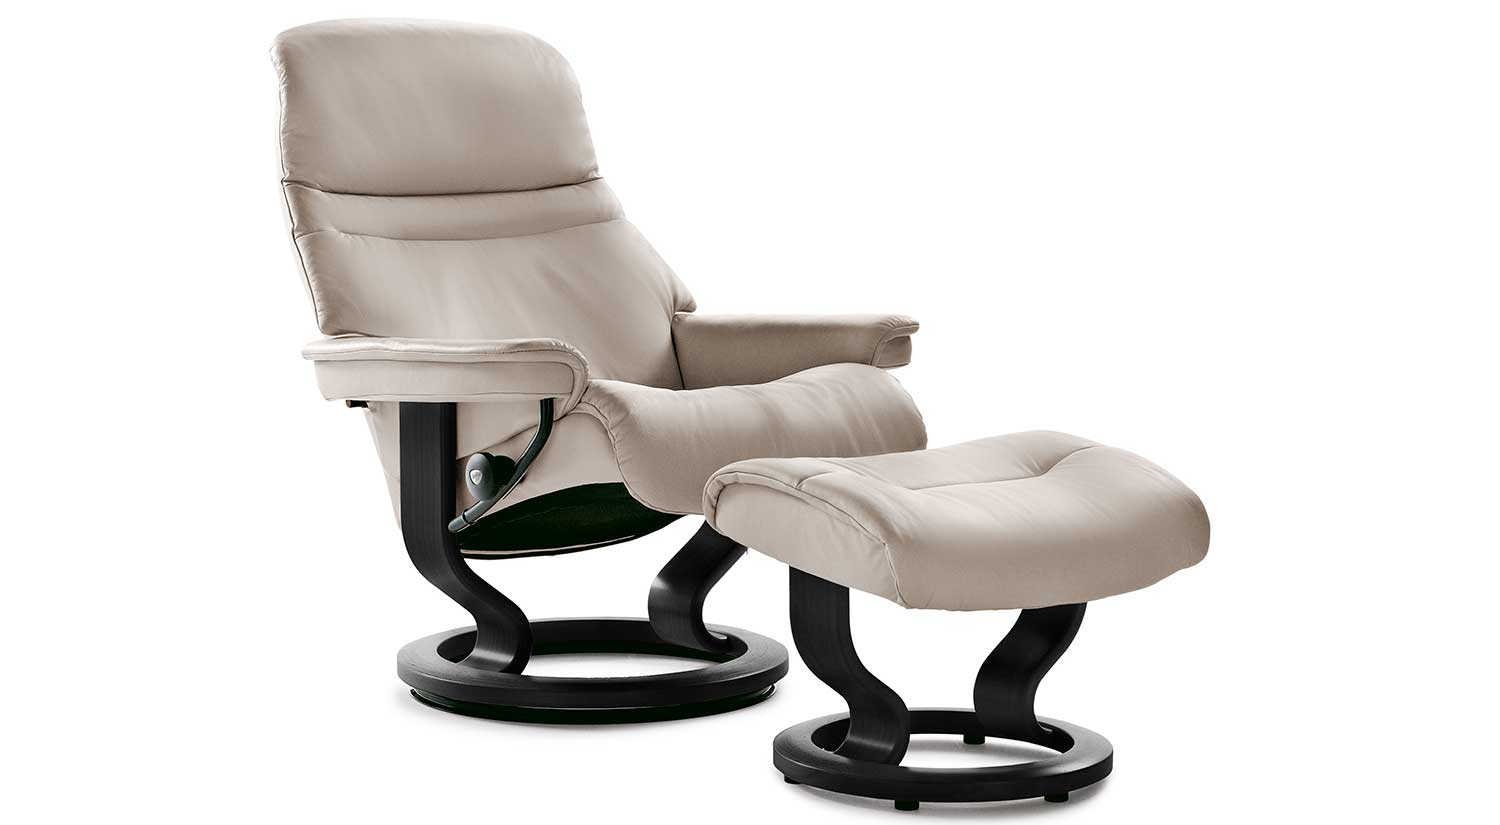 Circle Furniture Stressless Sunrise Chair Ekornes